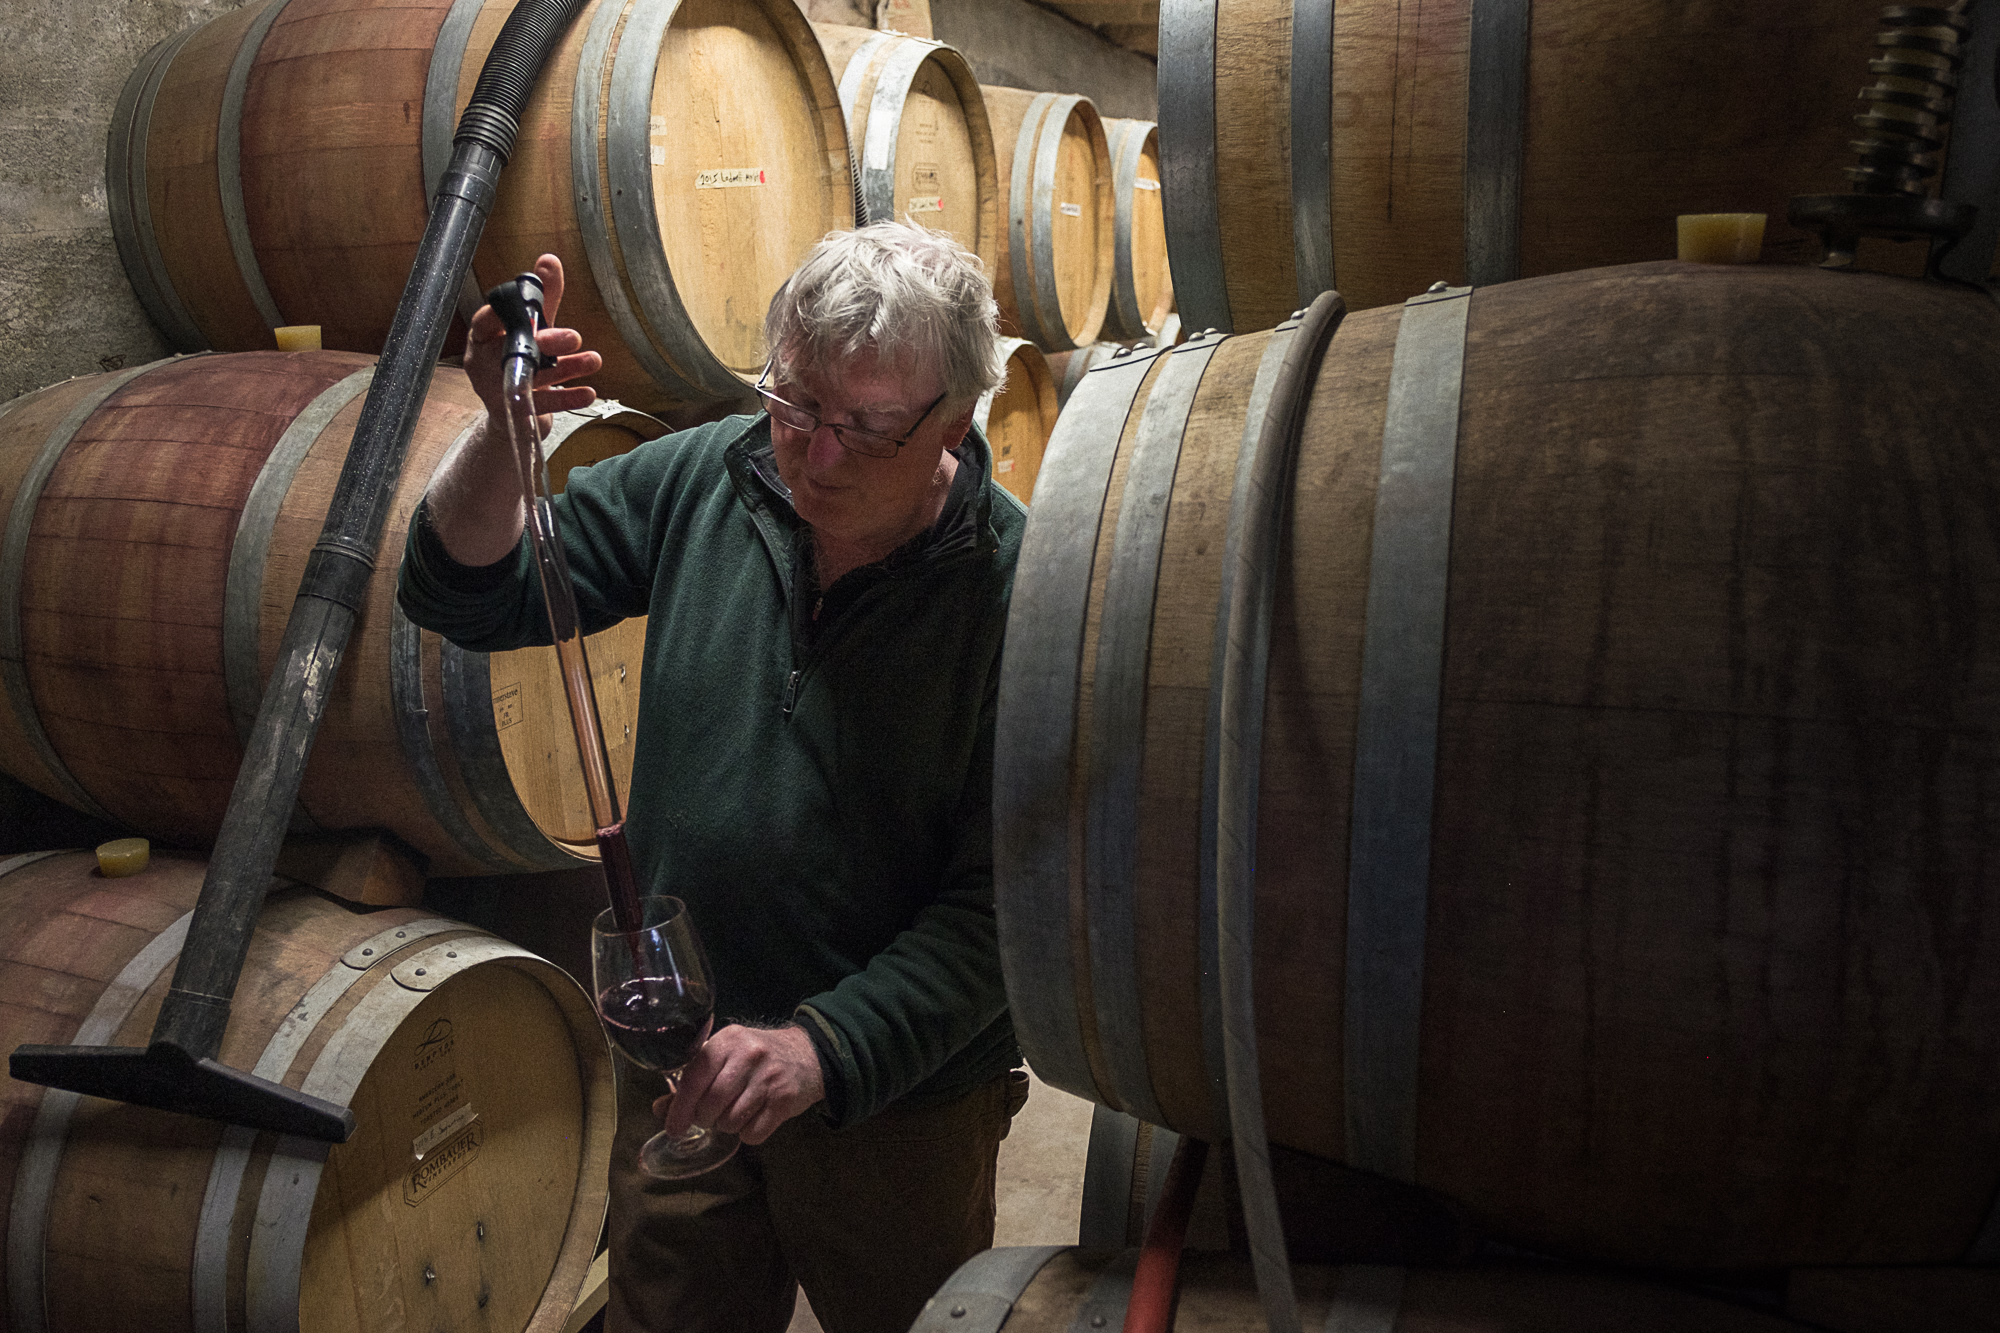 Dennis Raines, Assistant Winemaker at Wilridge Winery (Image: Paola Thomas/Seattle Refined)